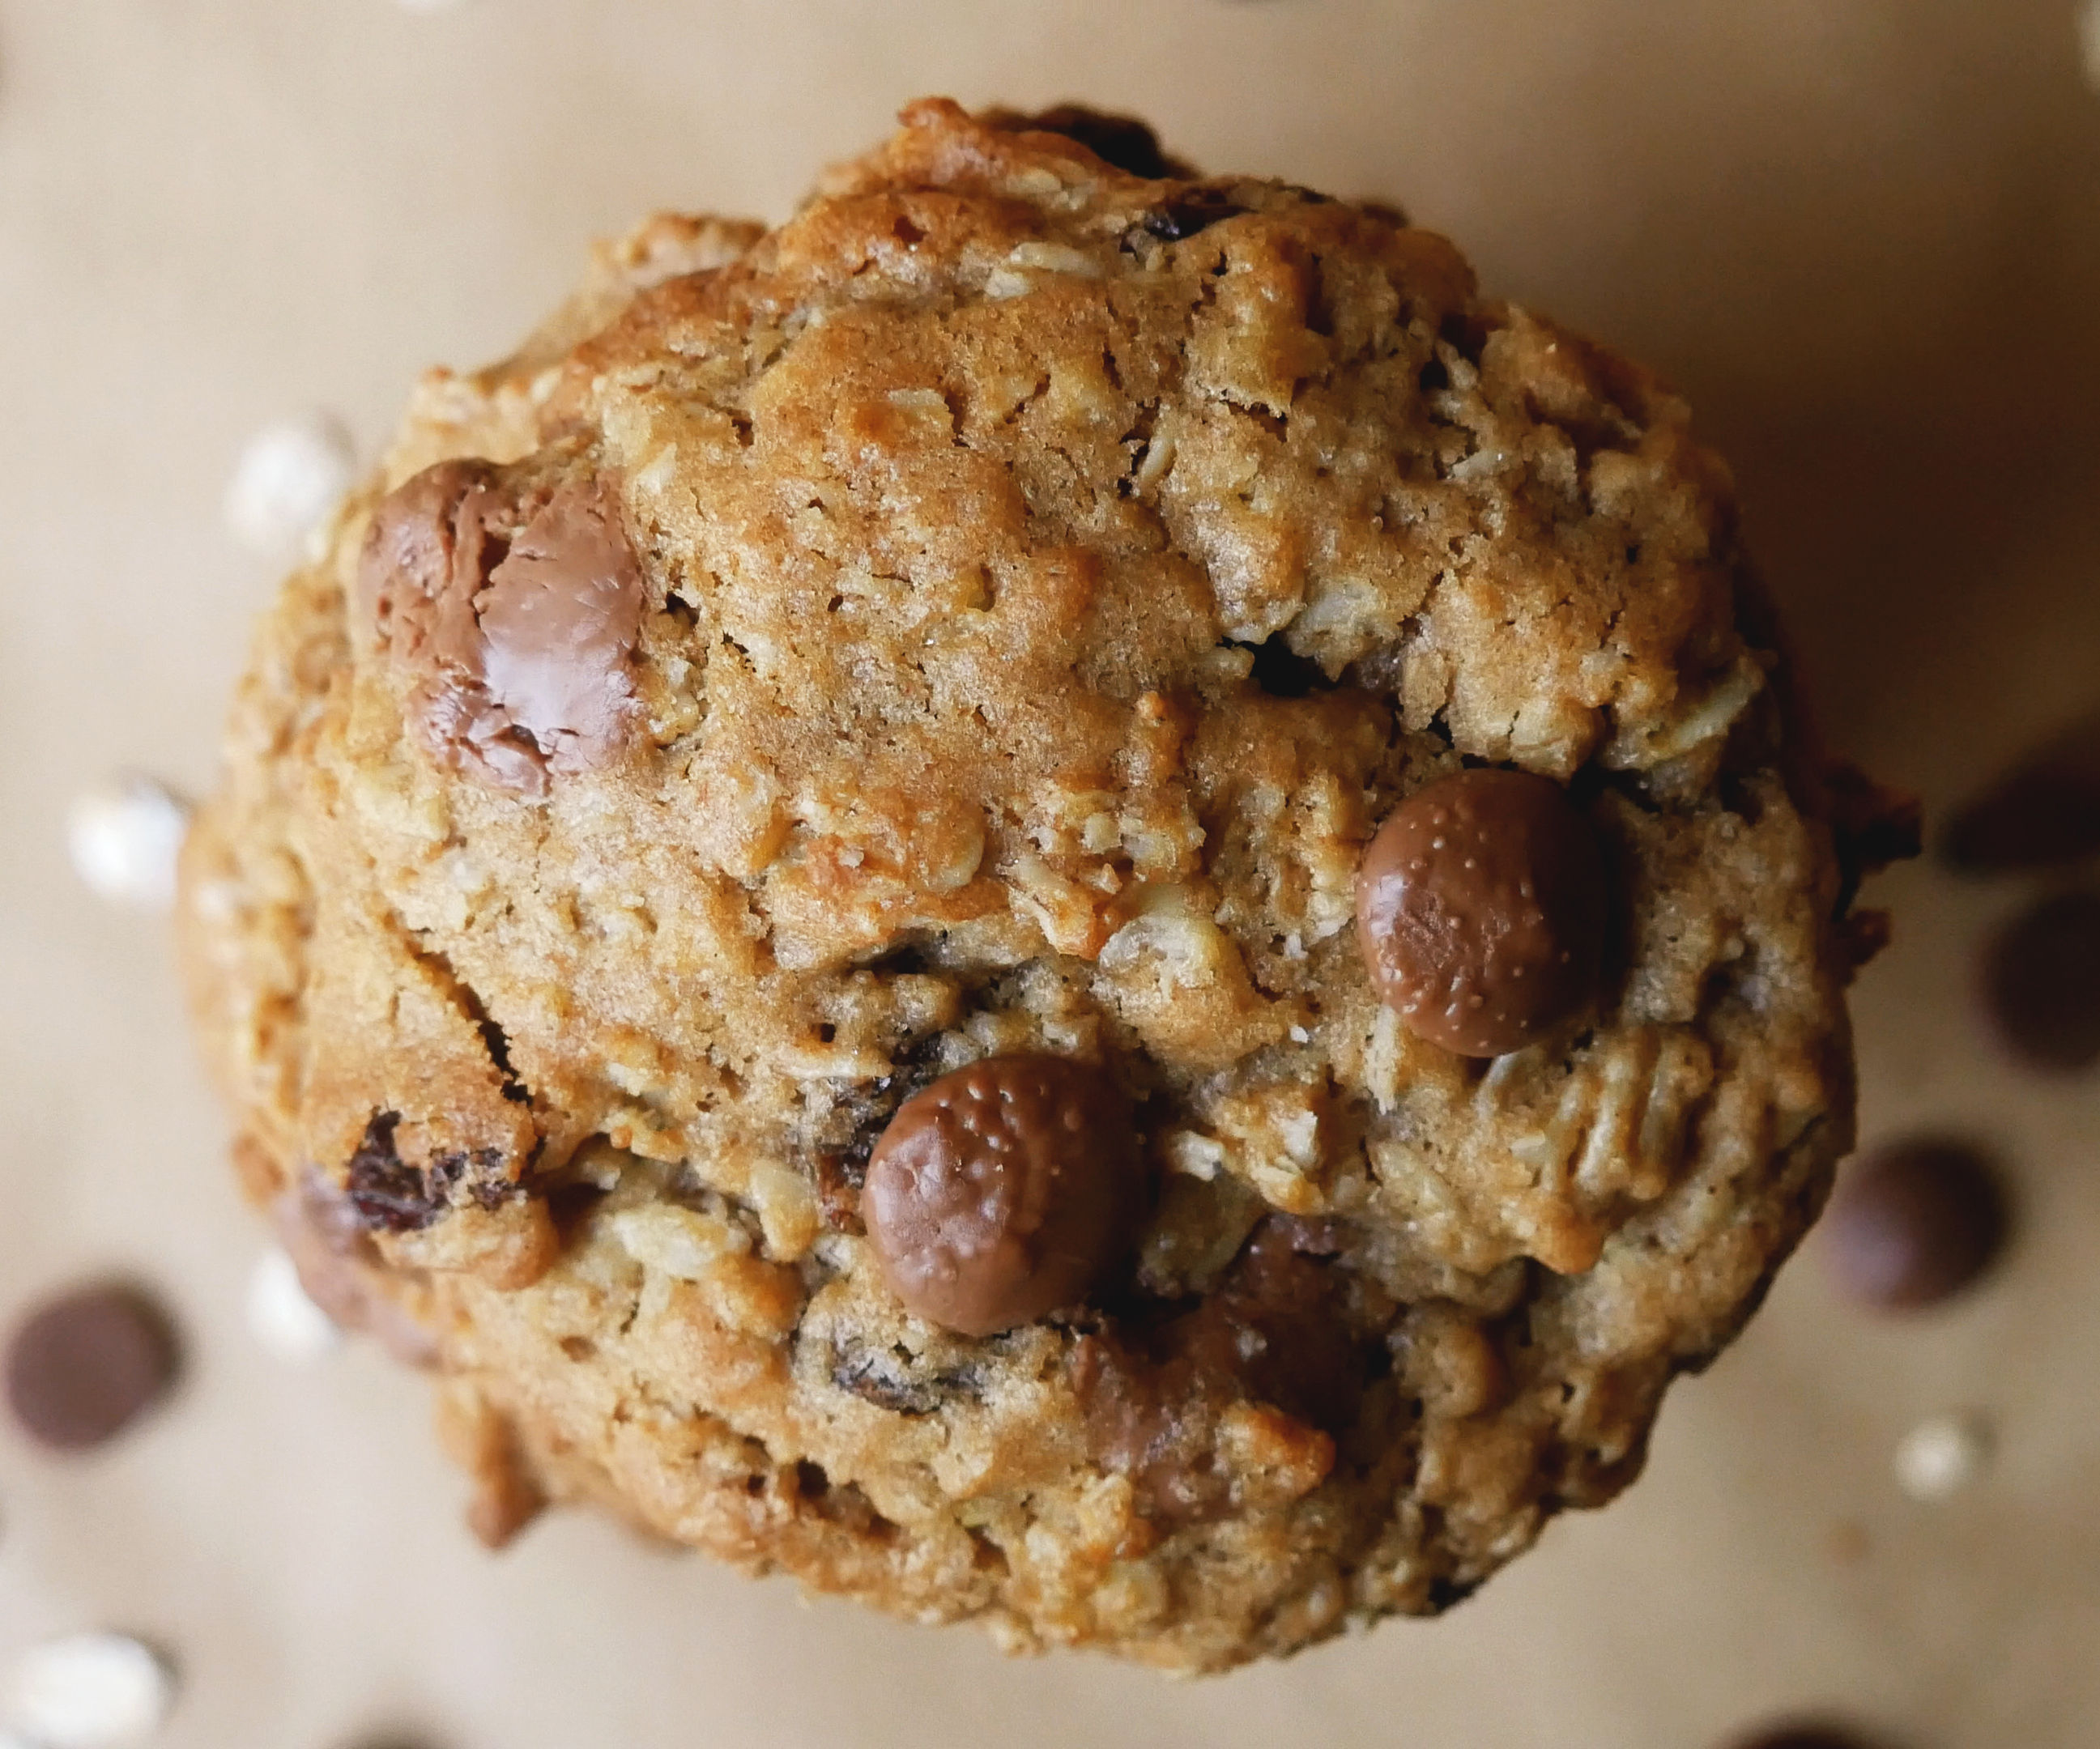 SOFT & CHEWY CHOCOLATE, PEANUT BUTTER & RAISIN OATMEAL COOKIES